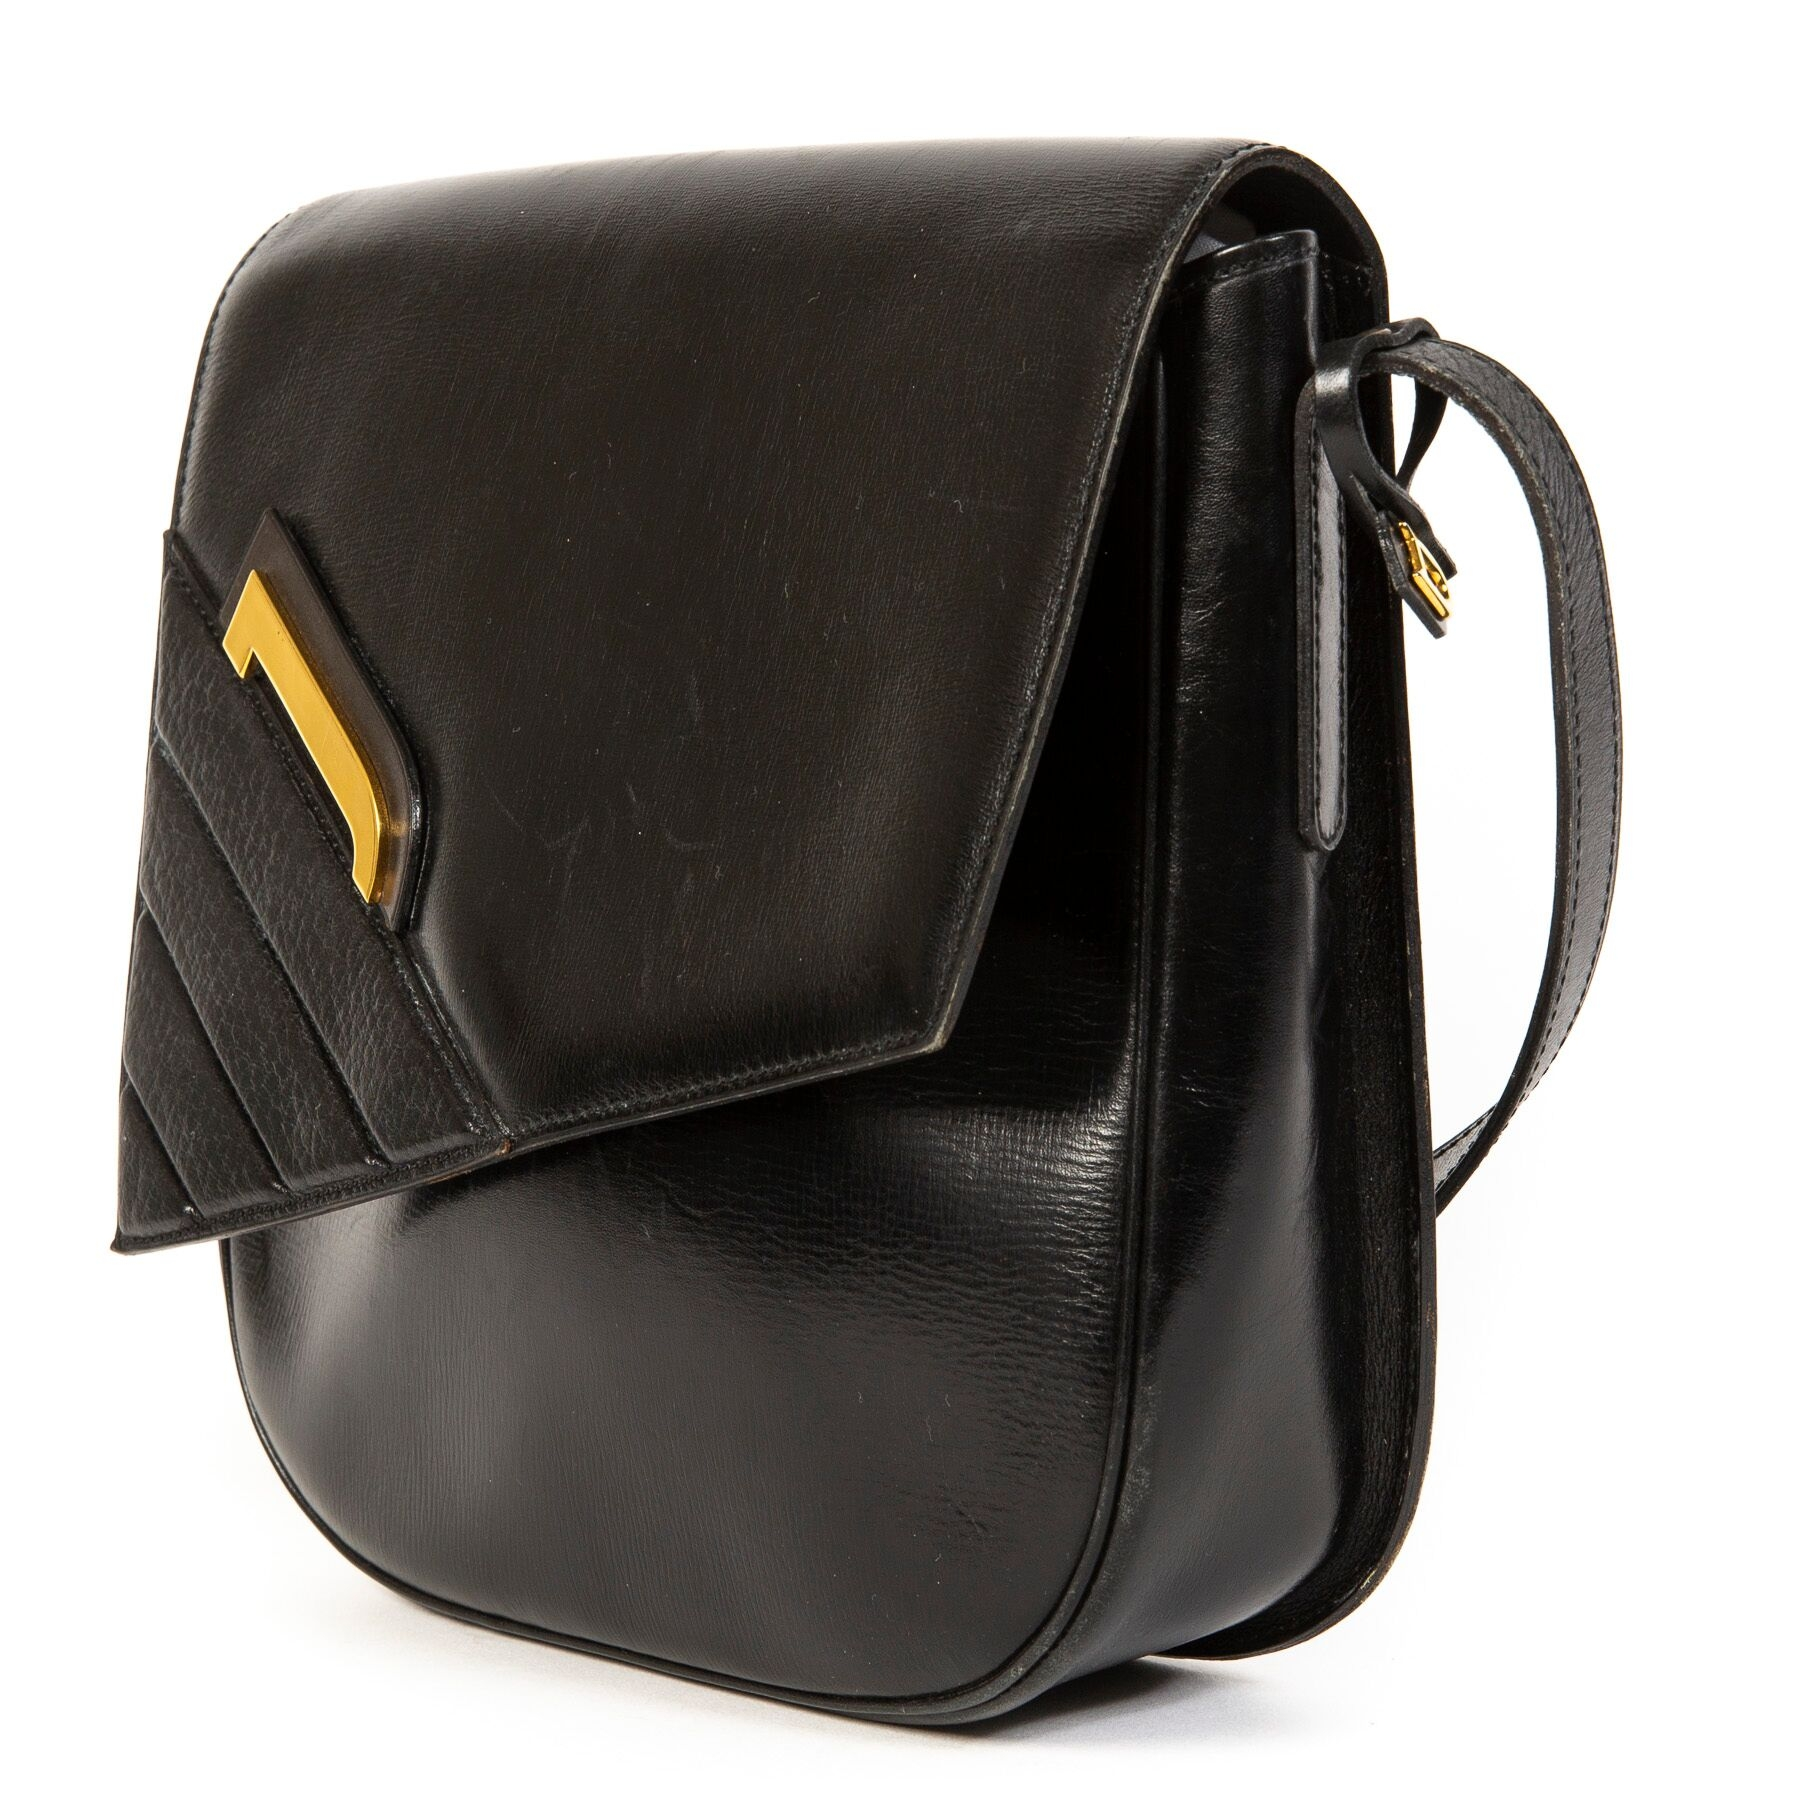 Buy secondhand Delvaux handbags at Labellov.